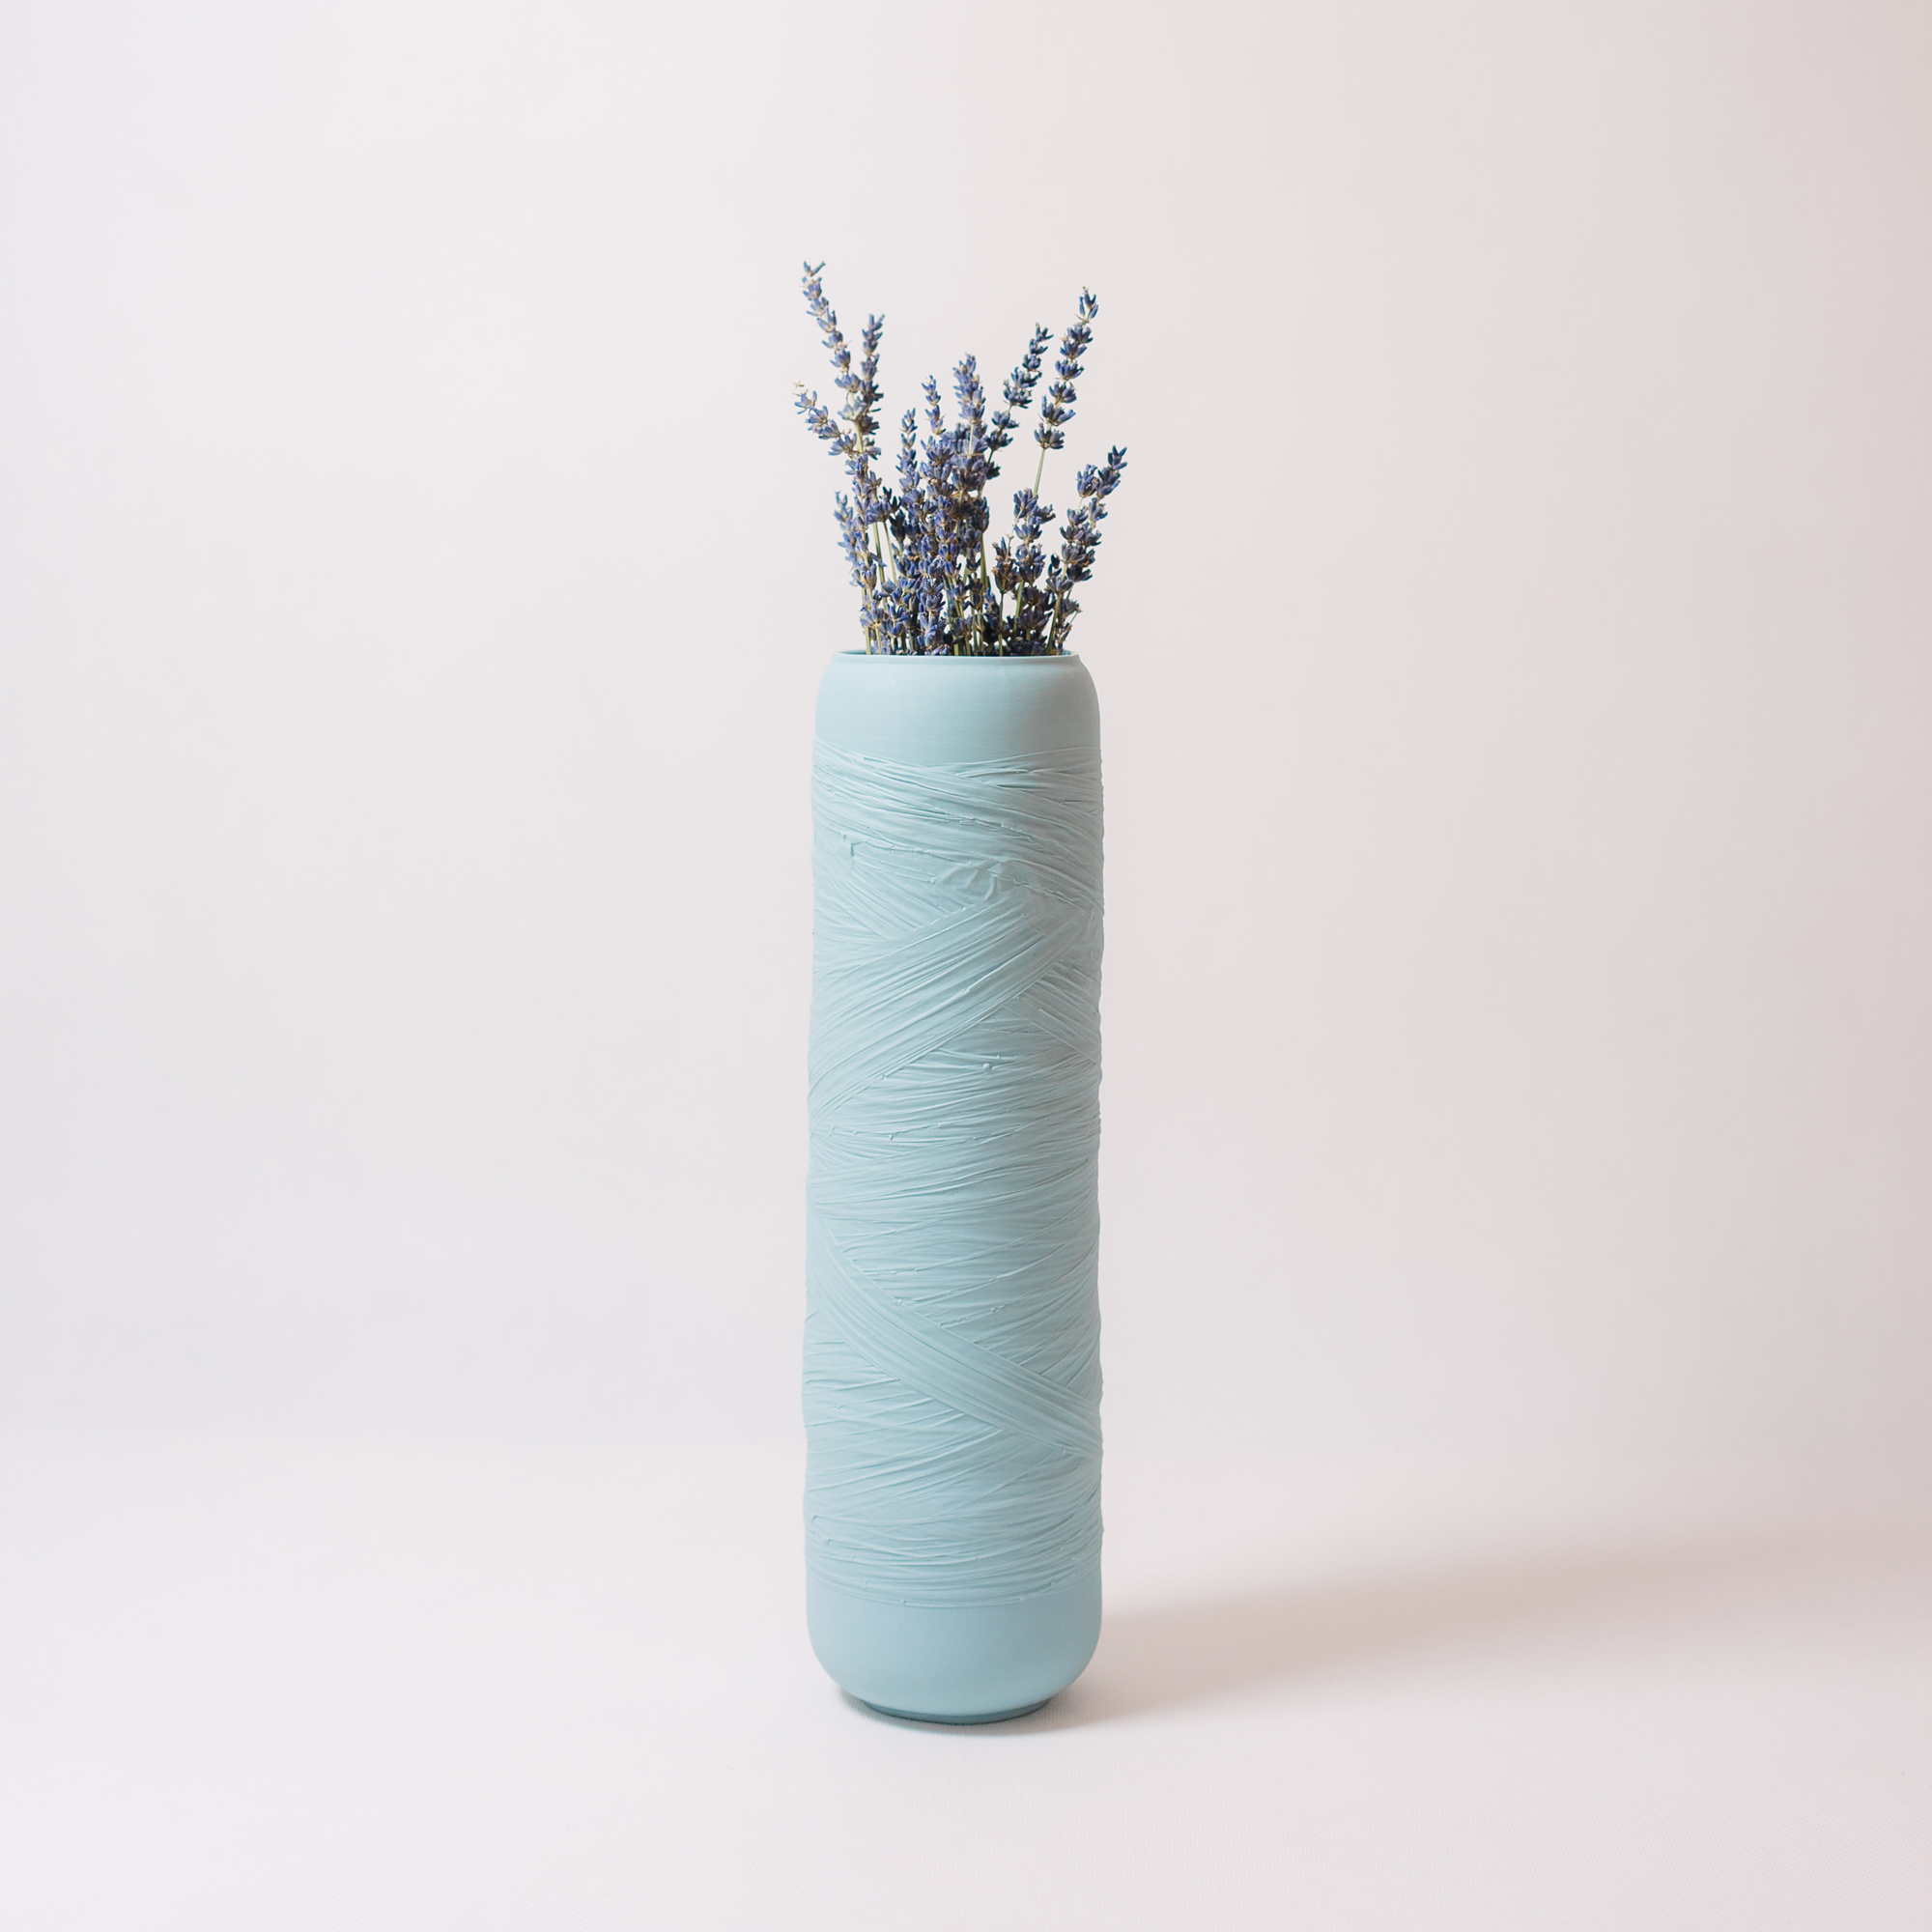 Swallow blue ceramic vase with flower by Nalejto